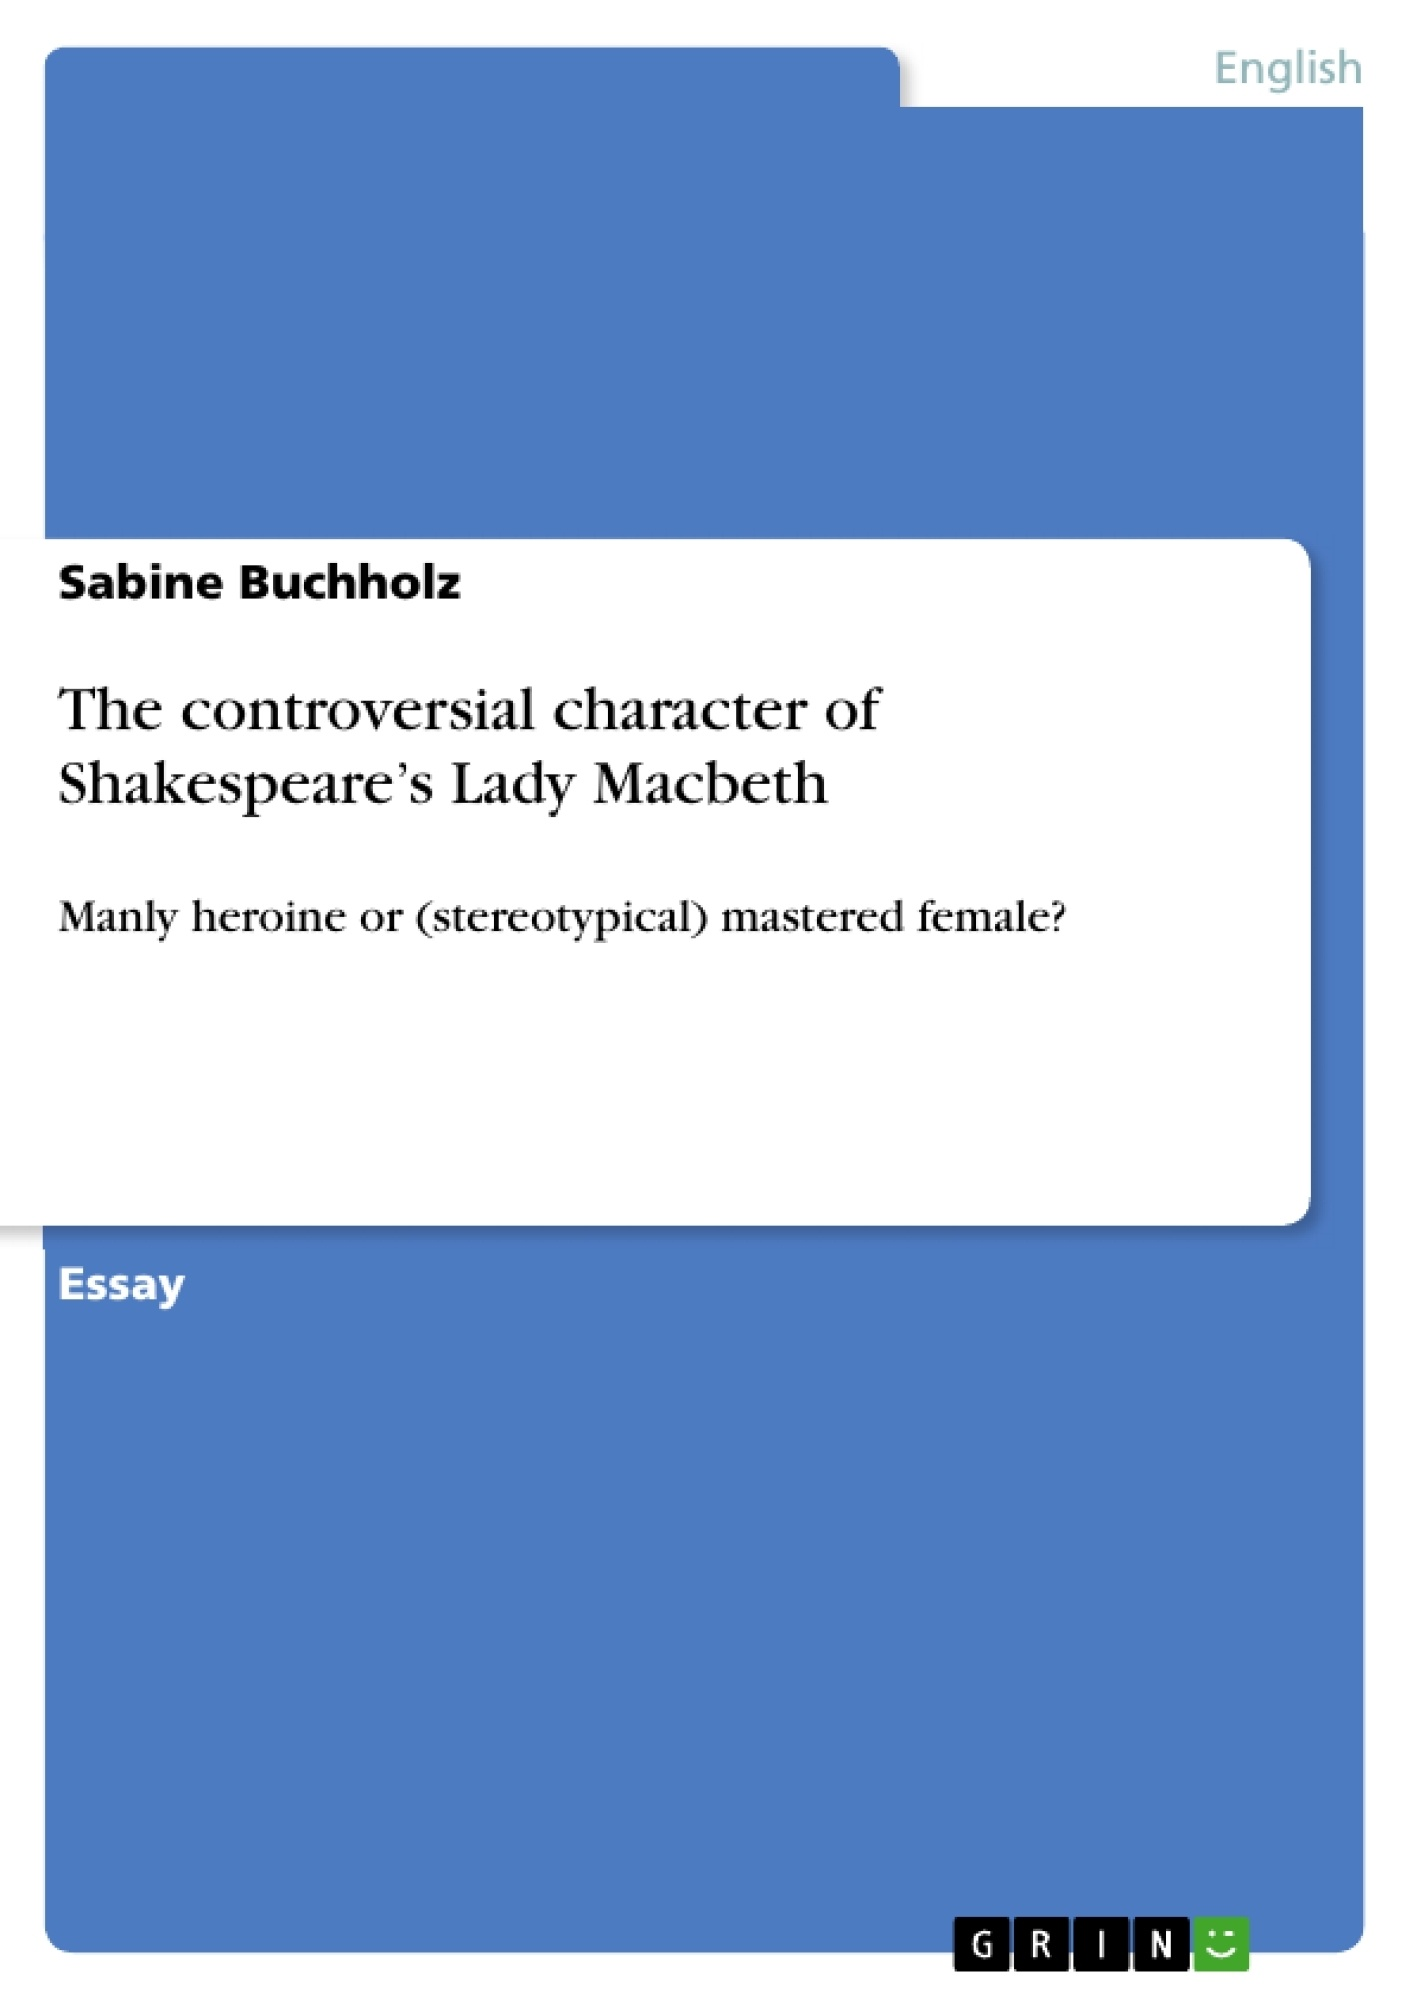 the controversial character of shakespeare s lady macbeth  upload your own papers earn money and win an iphone x